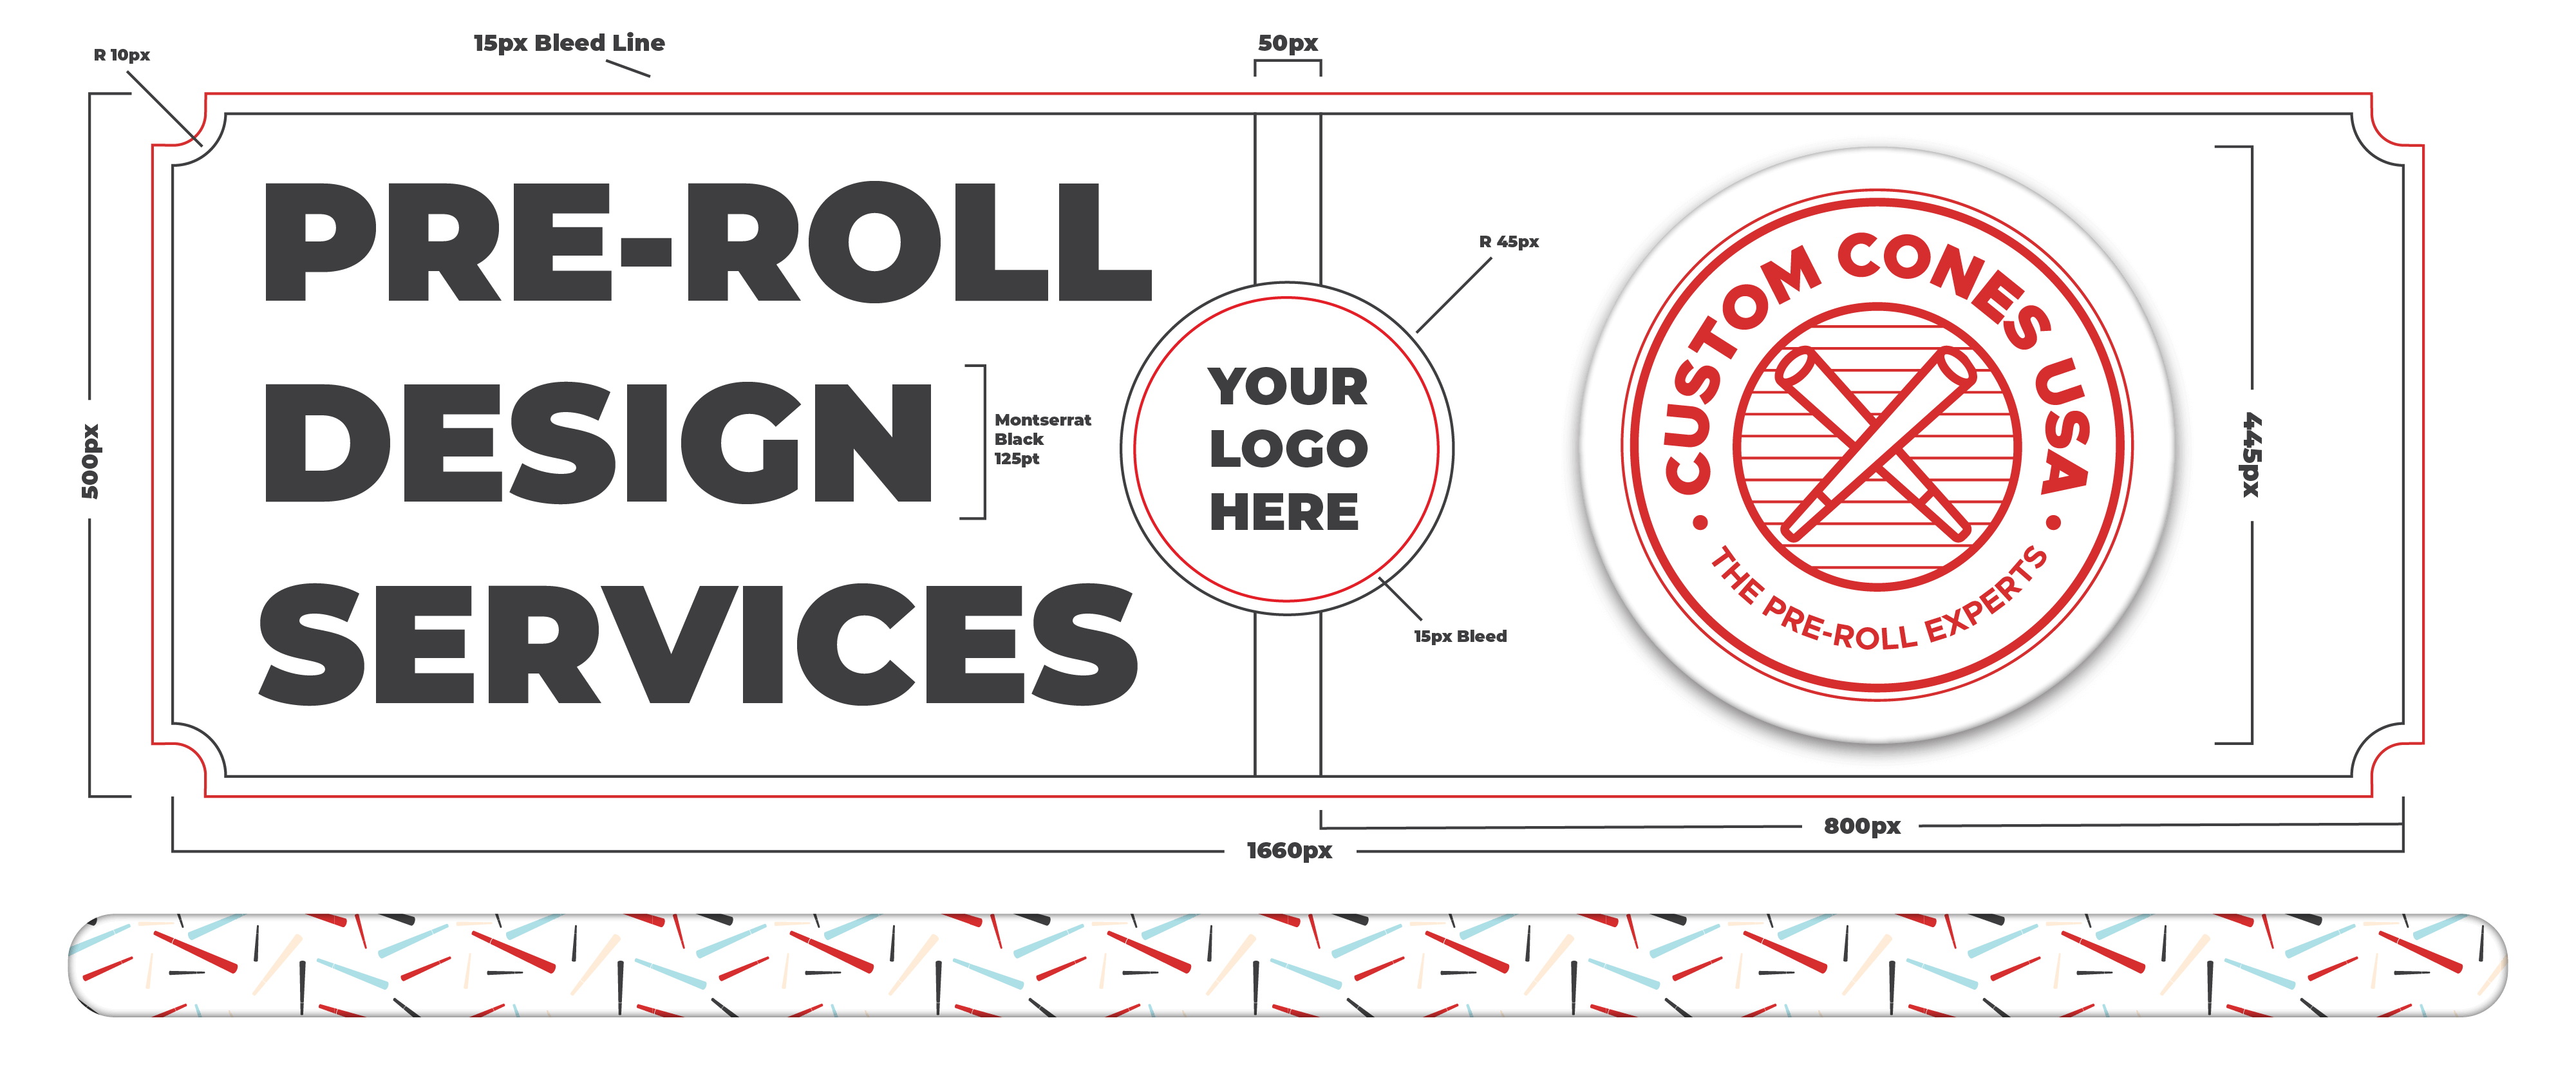 A banner for custom pre-roll design services